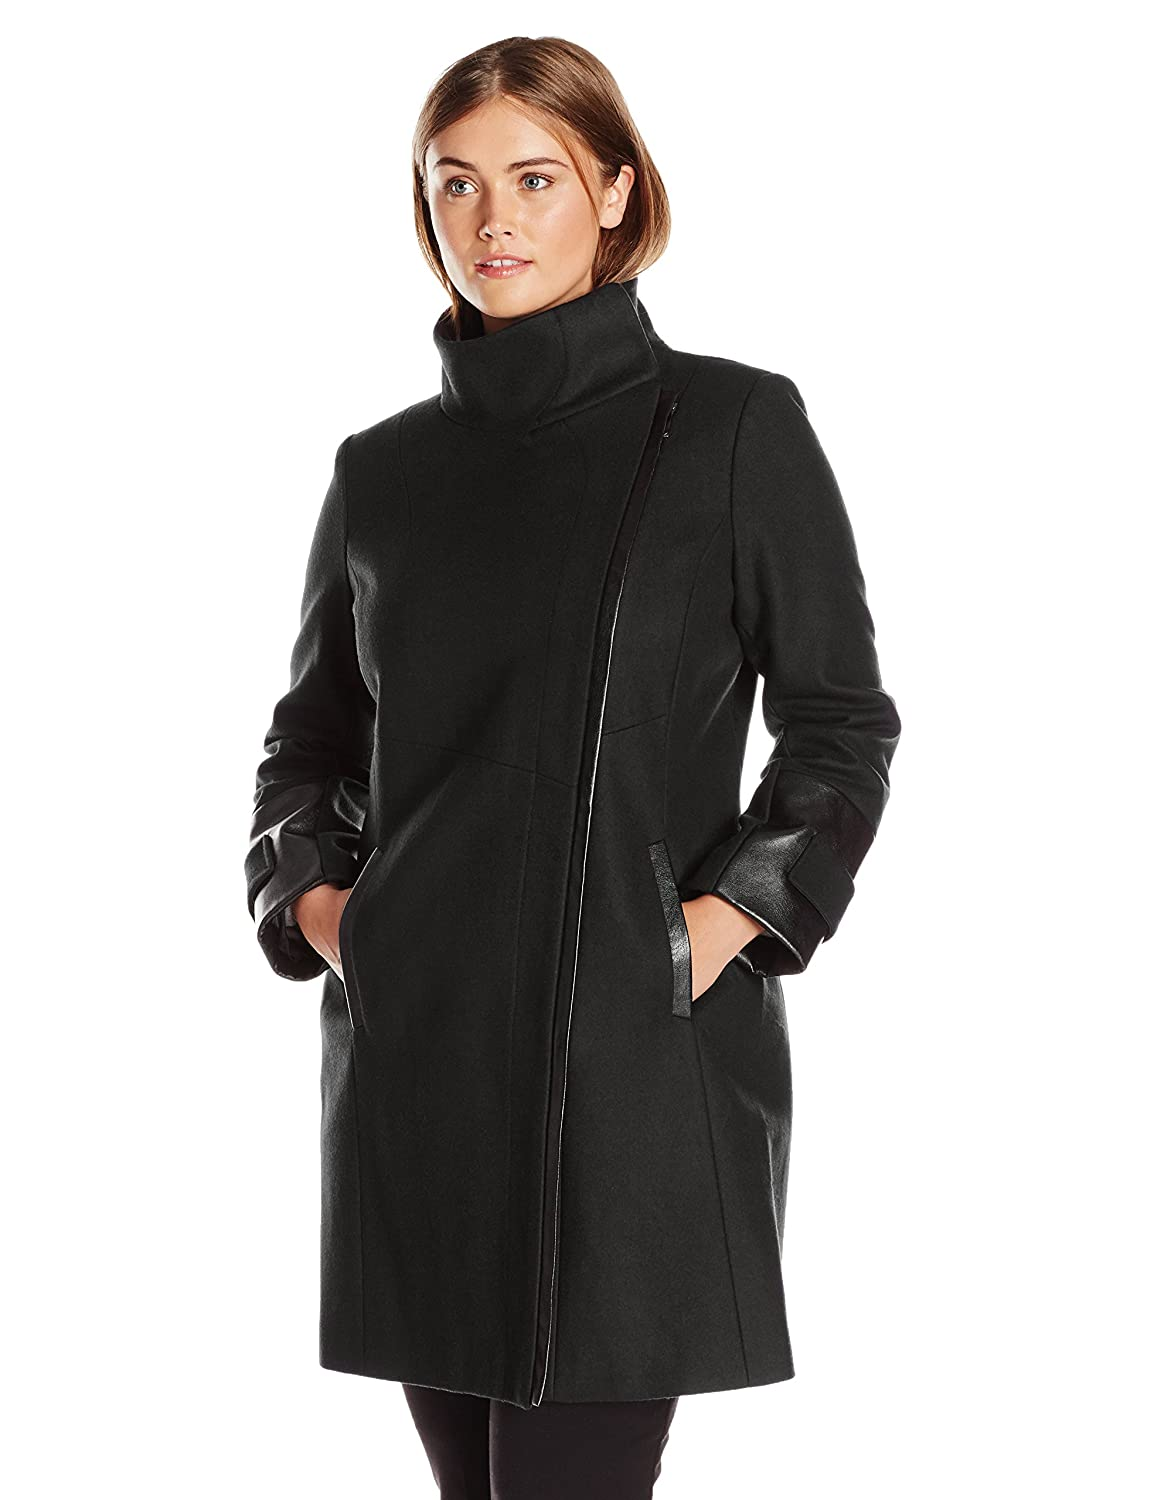 4e69ab6af3 Via Spiga Women s Plus-Size Asymmetrical Zip Front Wool Coat with Faux Fur  Collar at Amazon Women s Clothing store